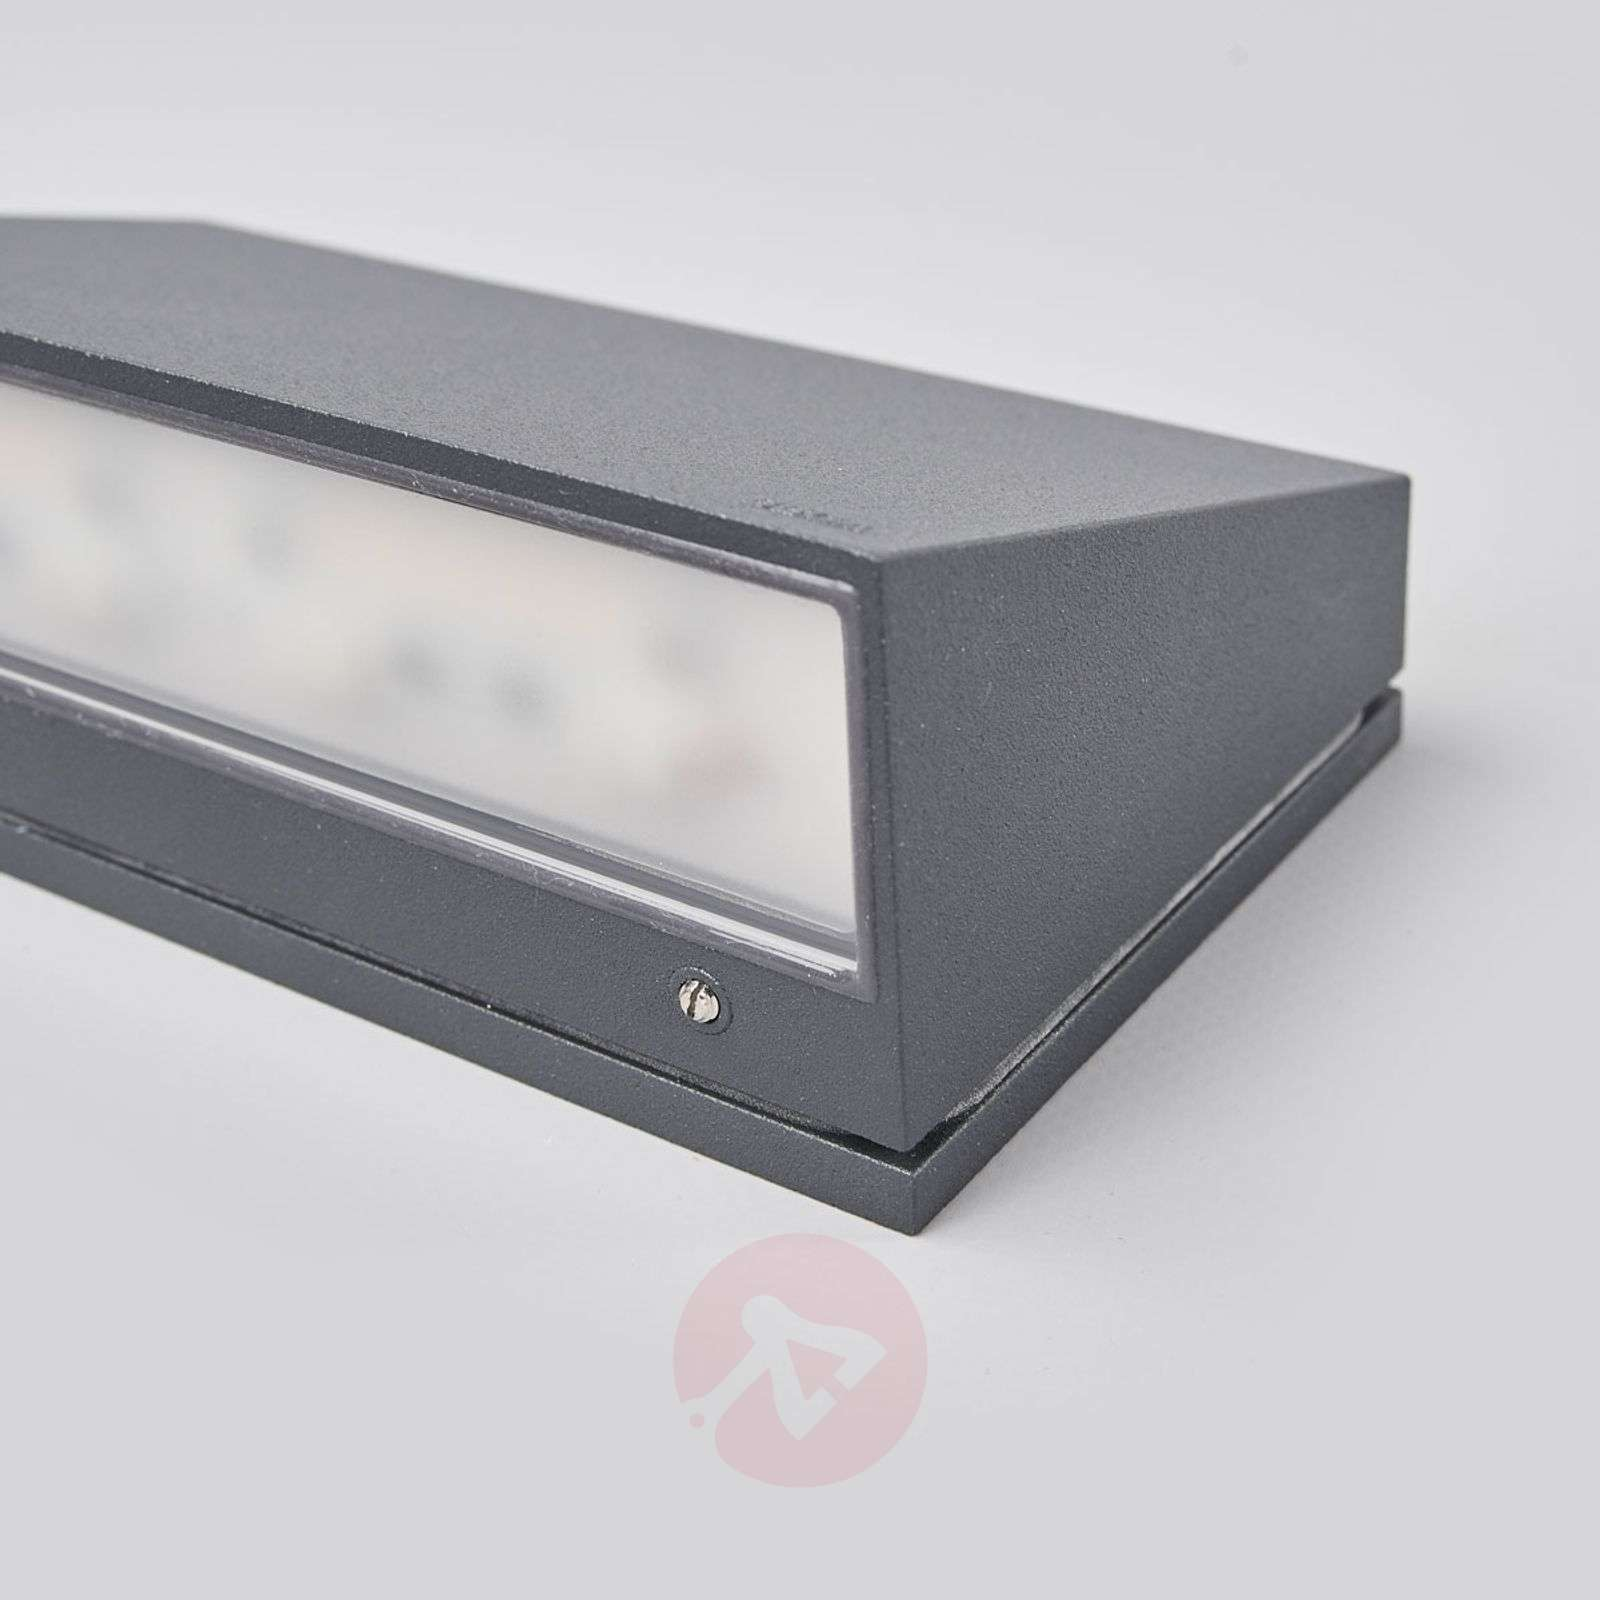 Bega LED outdoor wall light Dennis, aluminium-1566017-01